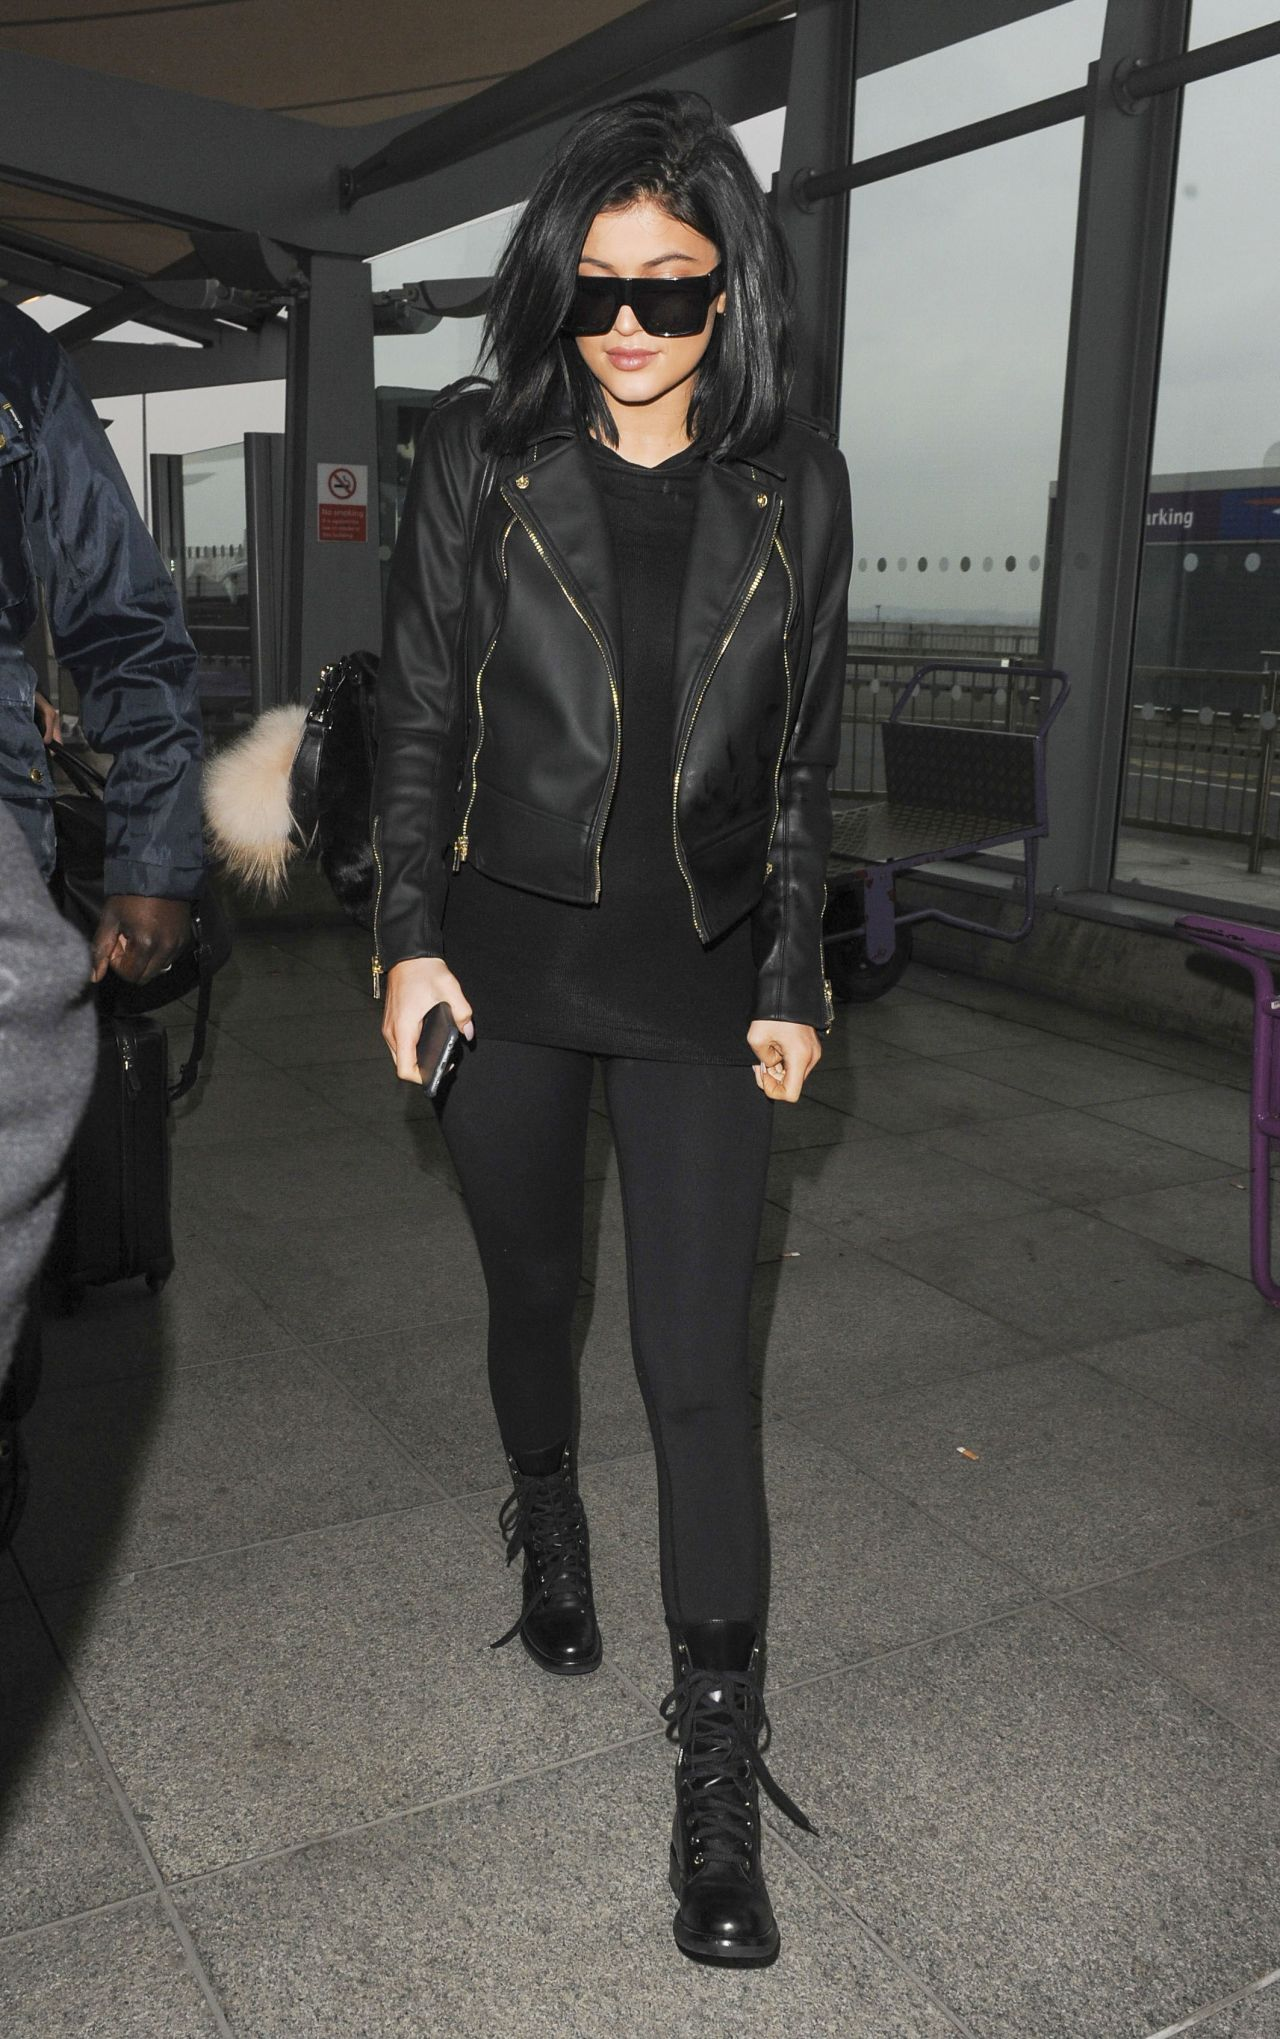 kylie jenner style  at london's heathrow airport march 2015